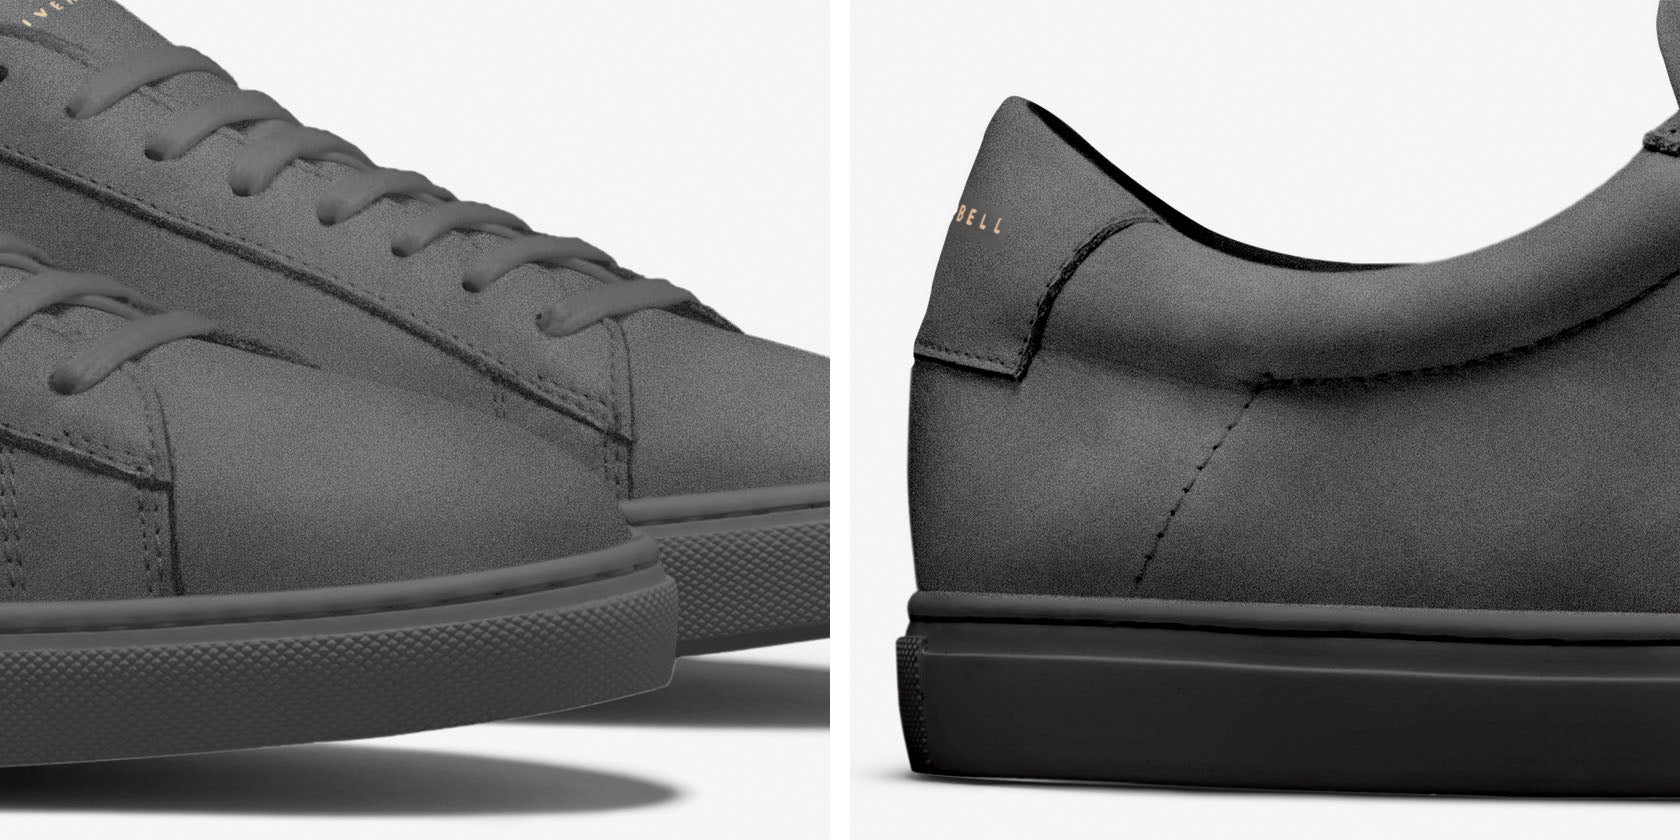 Design Details for Low 1 | Charcoal Nubuck